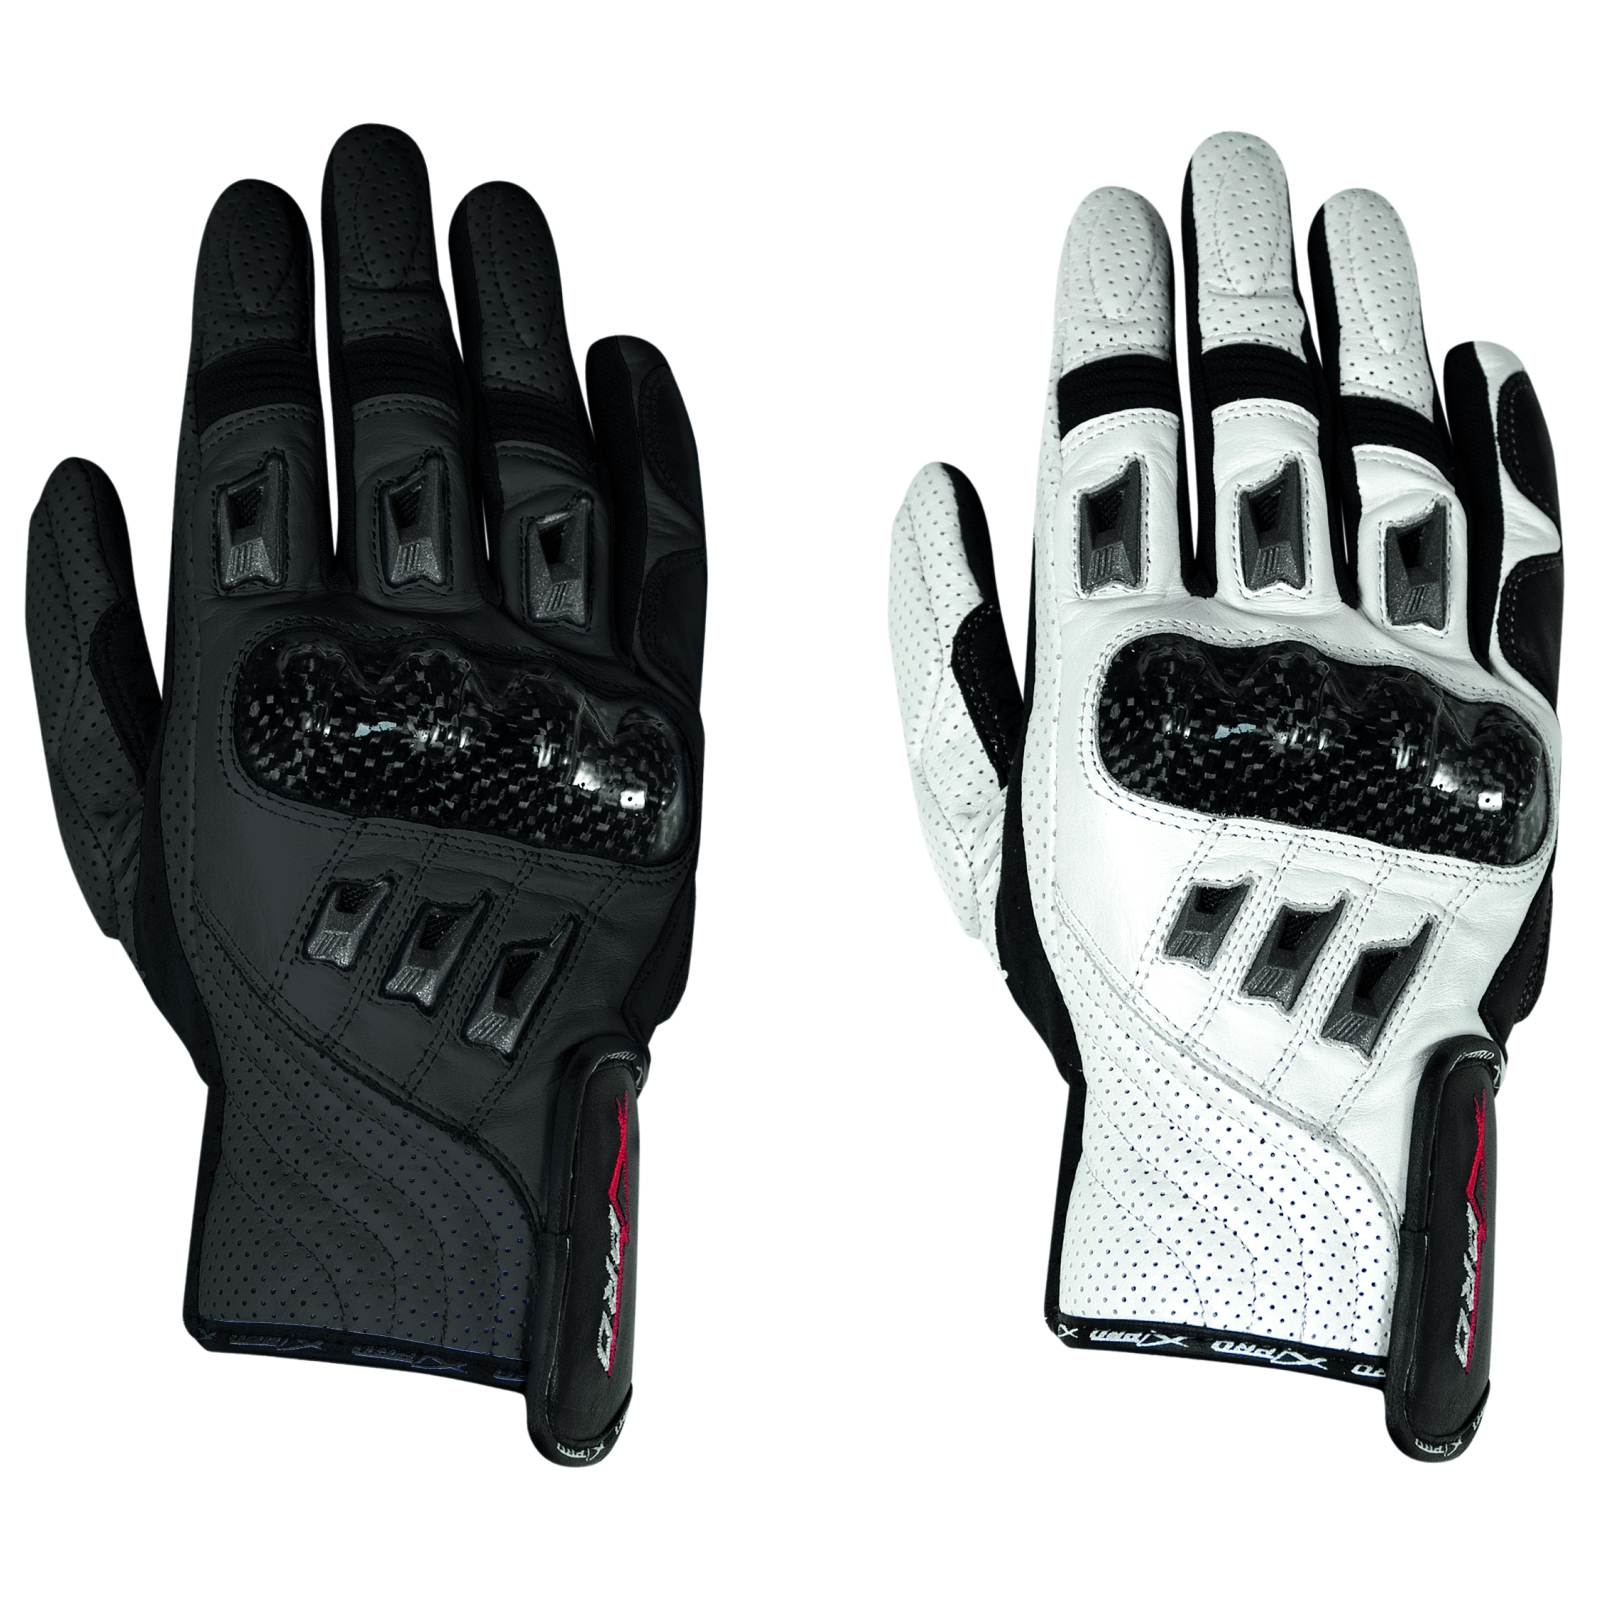 Gants-Cuir-Moto-Motard-sport-Protection-Articulation-Respirant-perfore